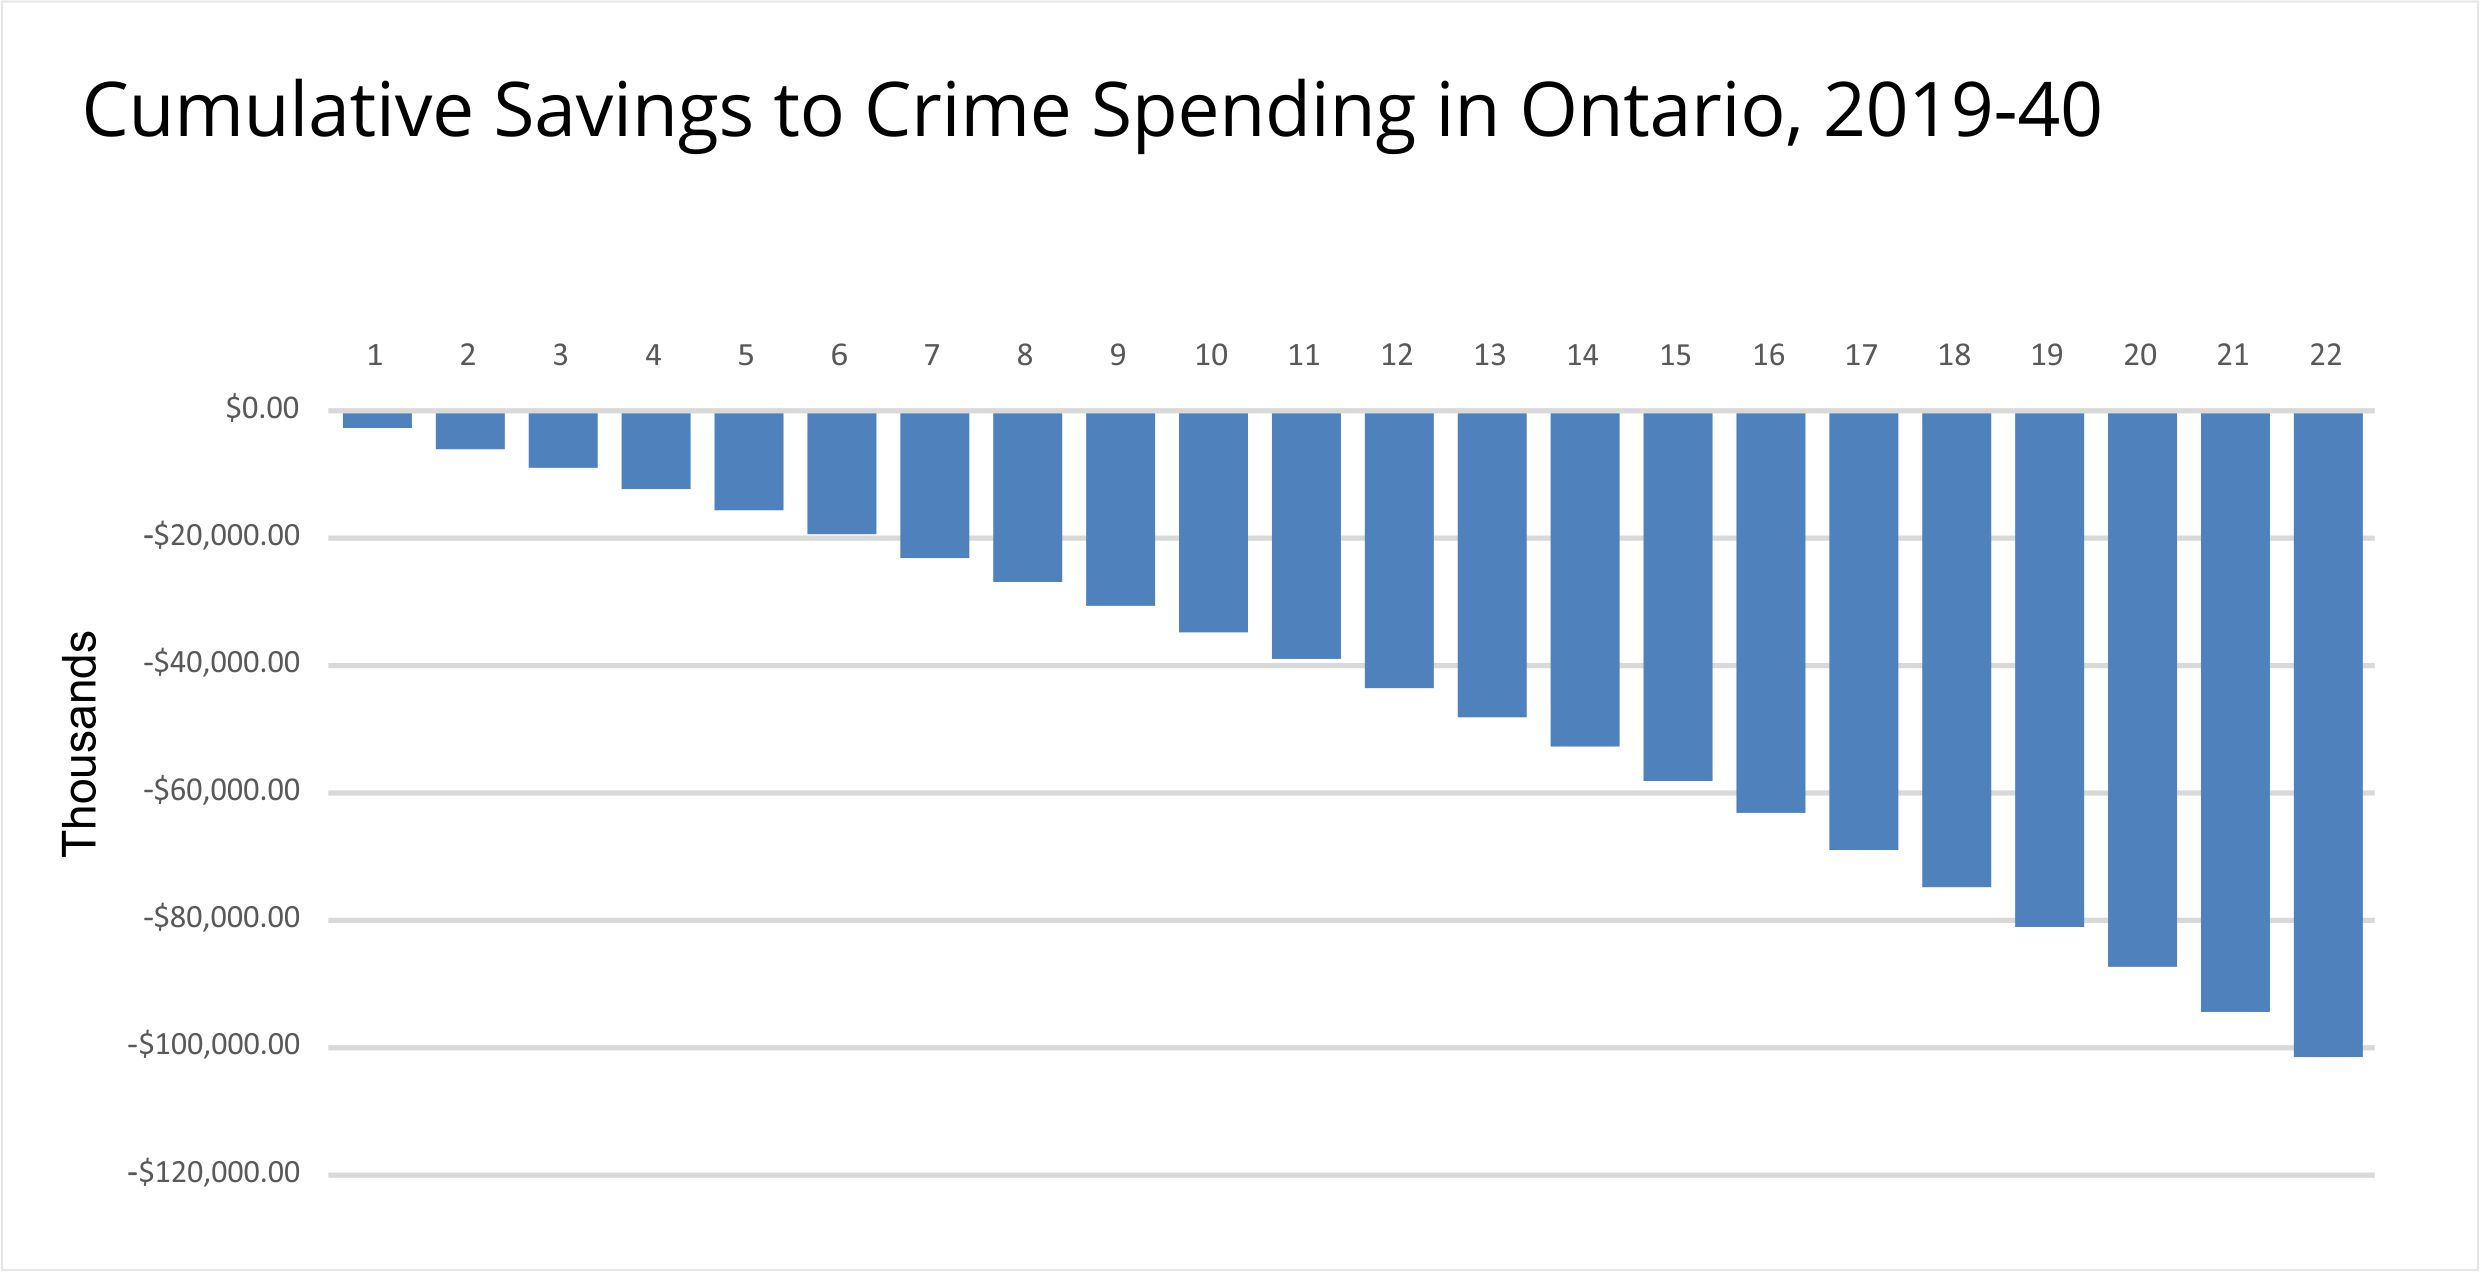 Cumulative Savings to Crime Spending in Ontario, 2019-40